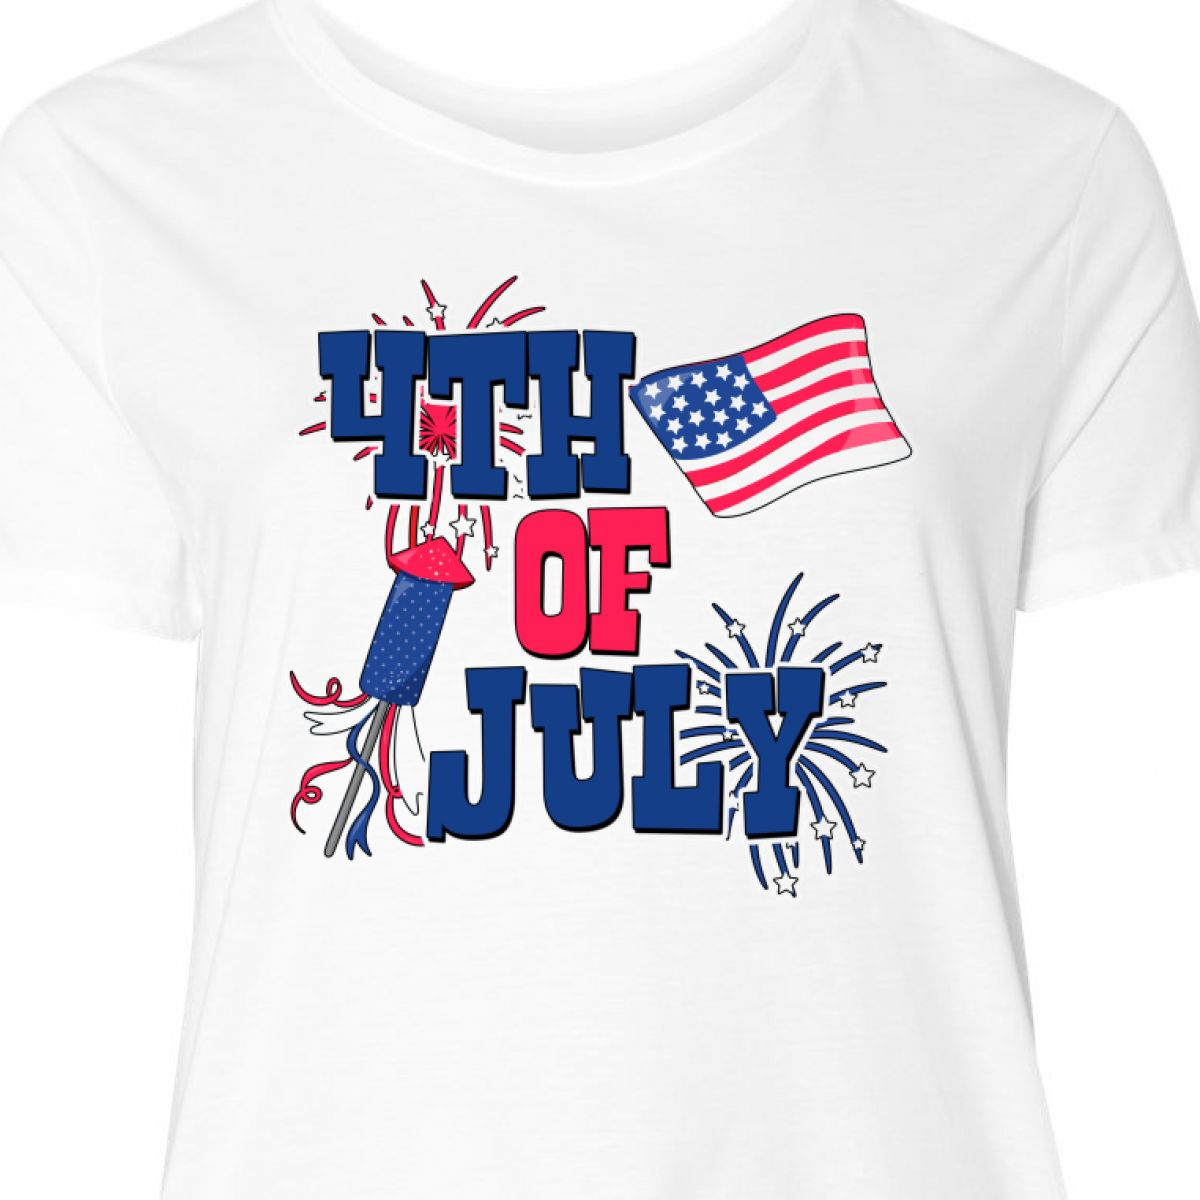 5b920903c Inktastic 4th Of July With Fireworks American Flag And Women's Plus Size T- Shirt Damenmode